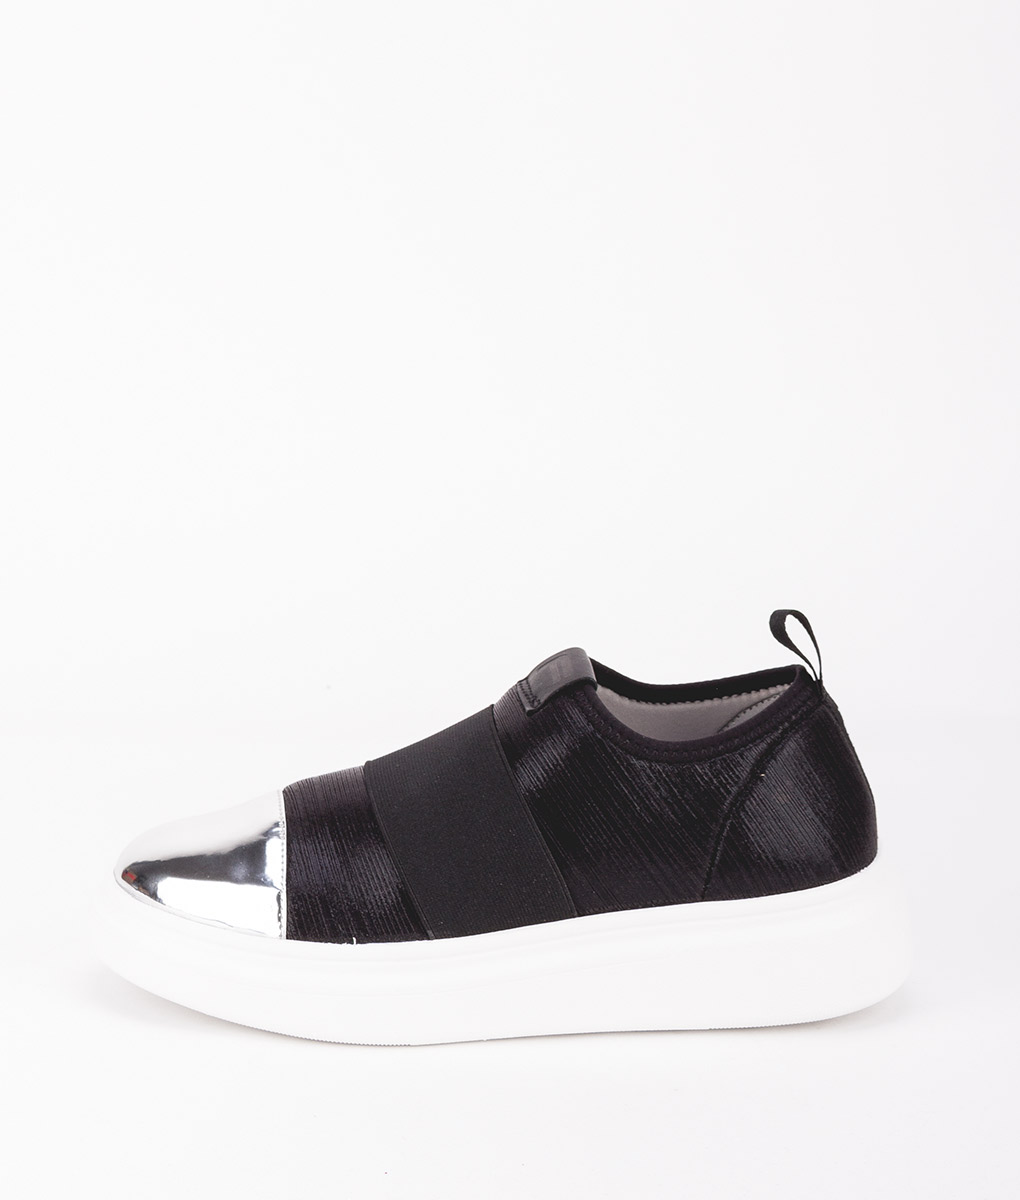 FESSURA Women Sneakers EDG008 EDGE ONE, Mirror Black 149.99